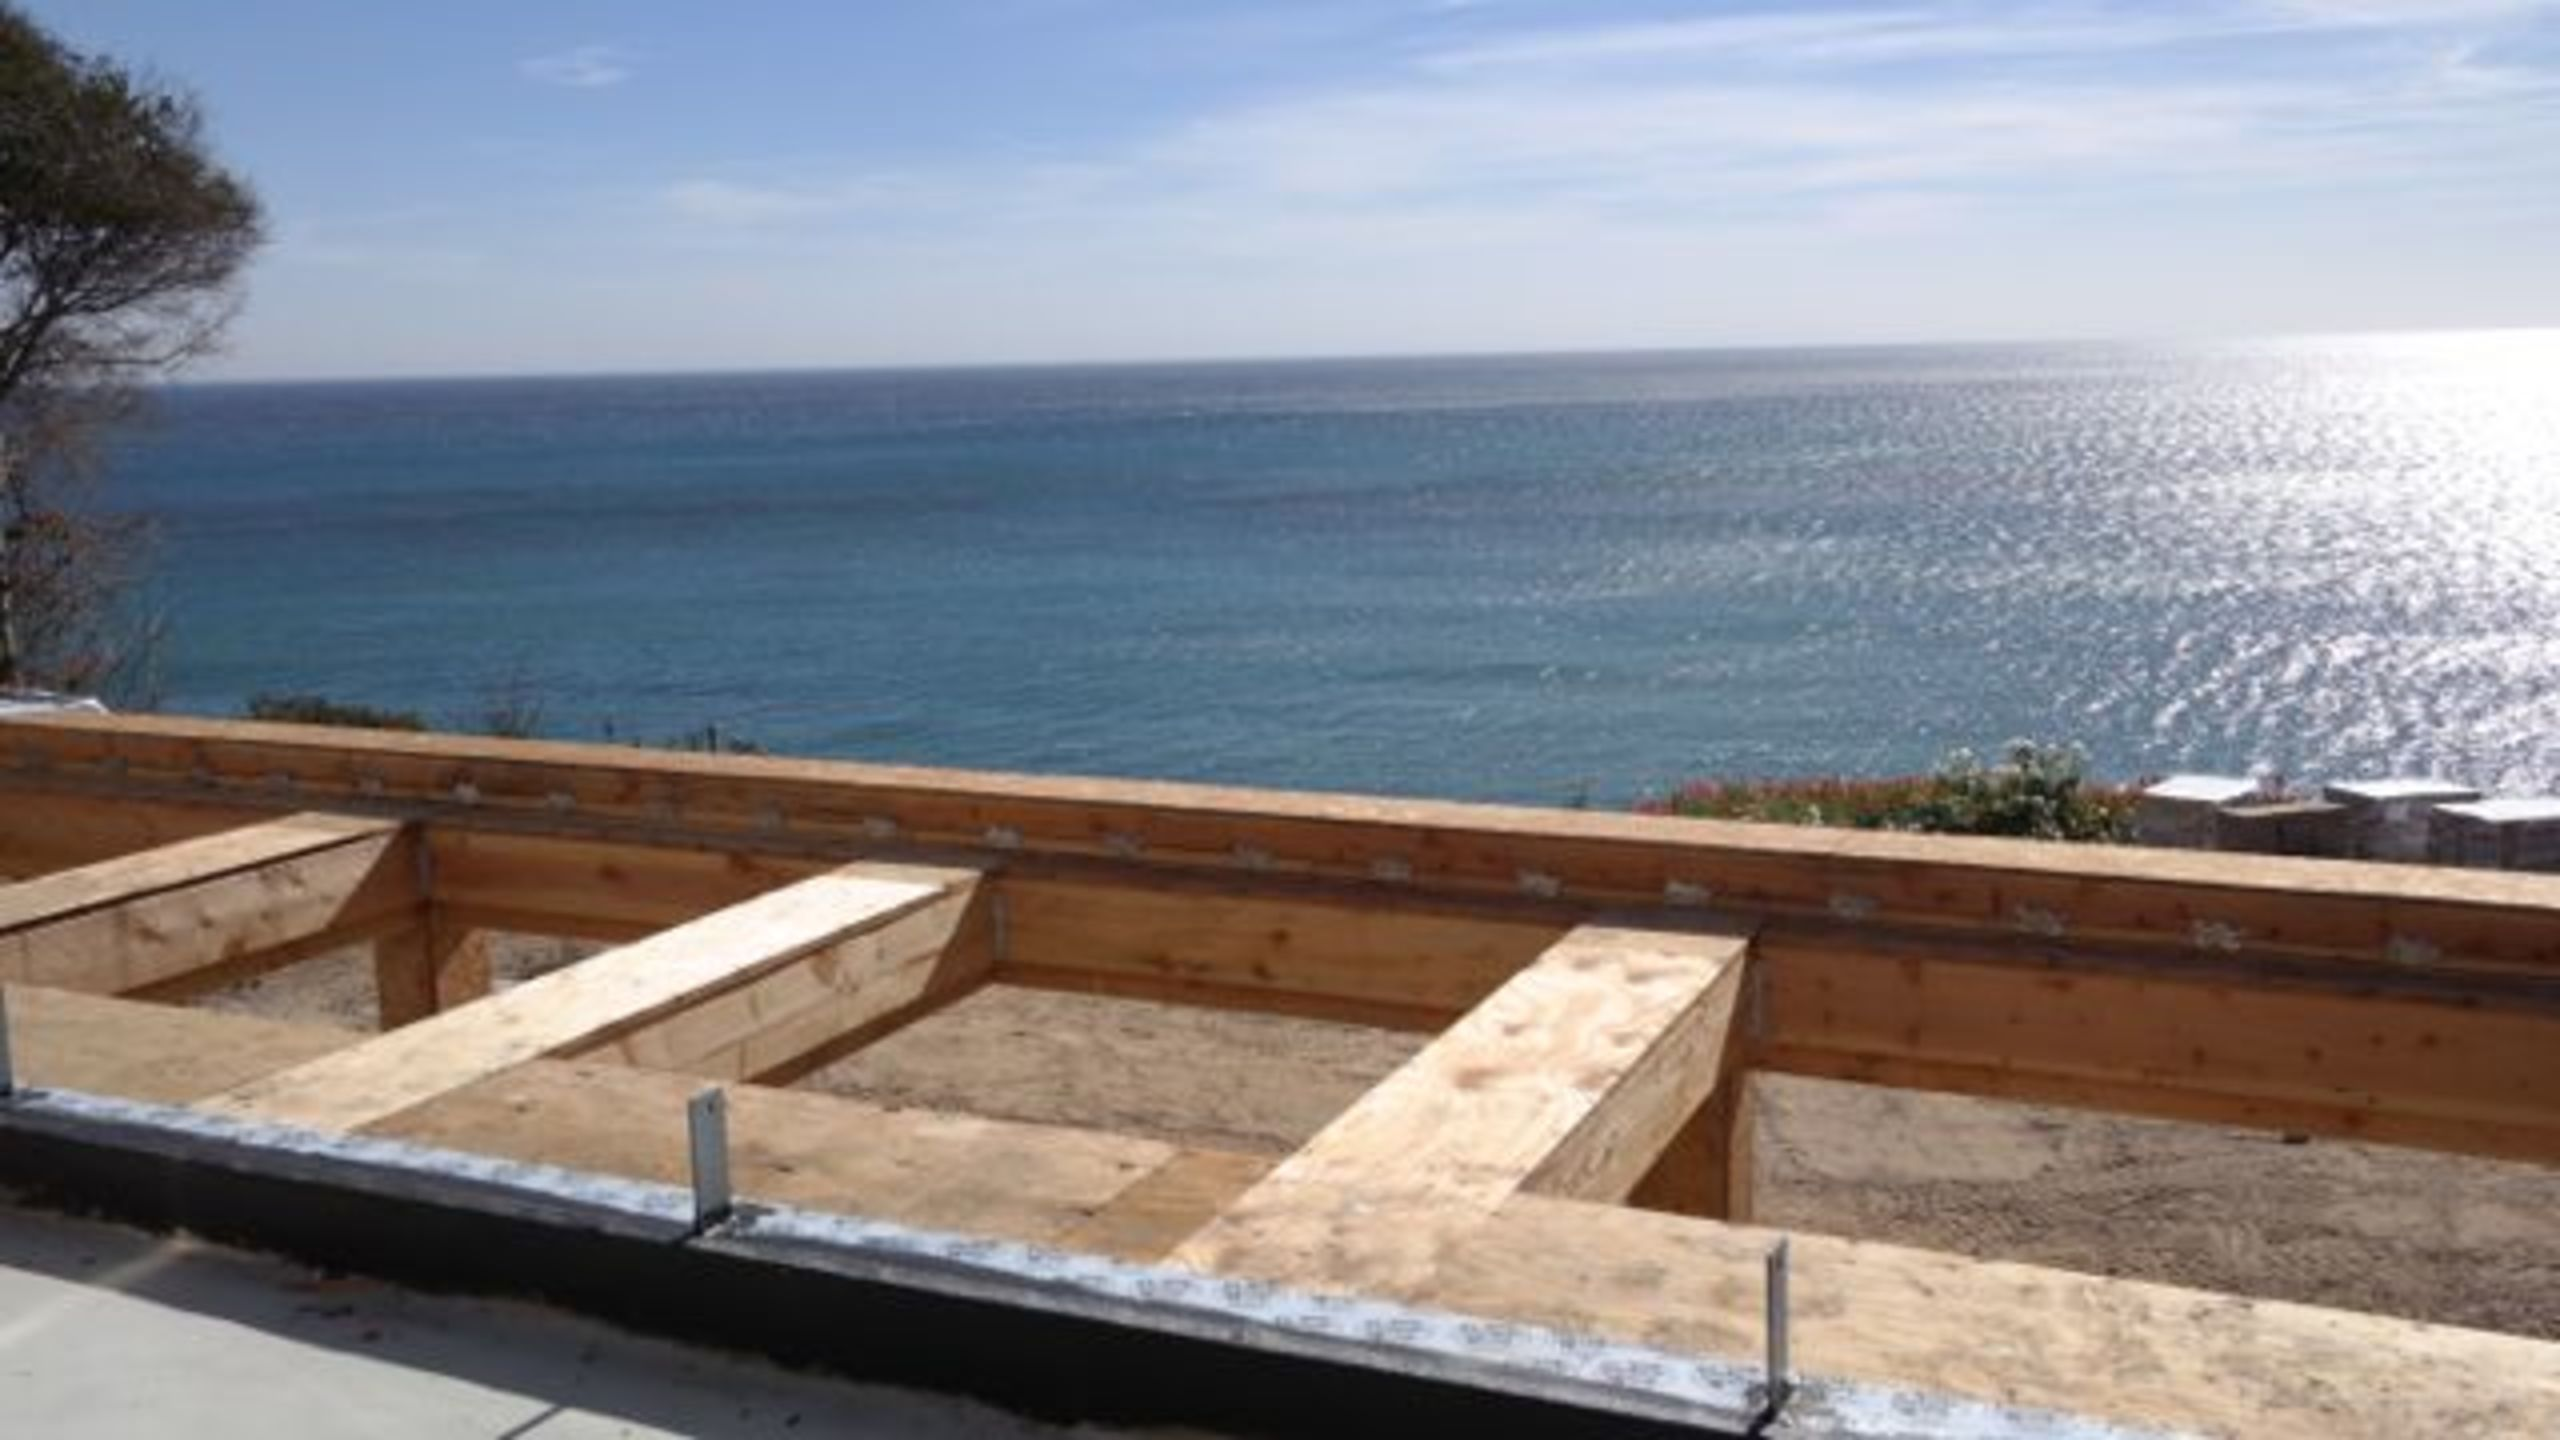 Inspirational views under construction, Malibu